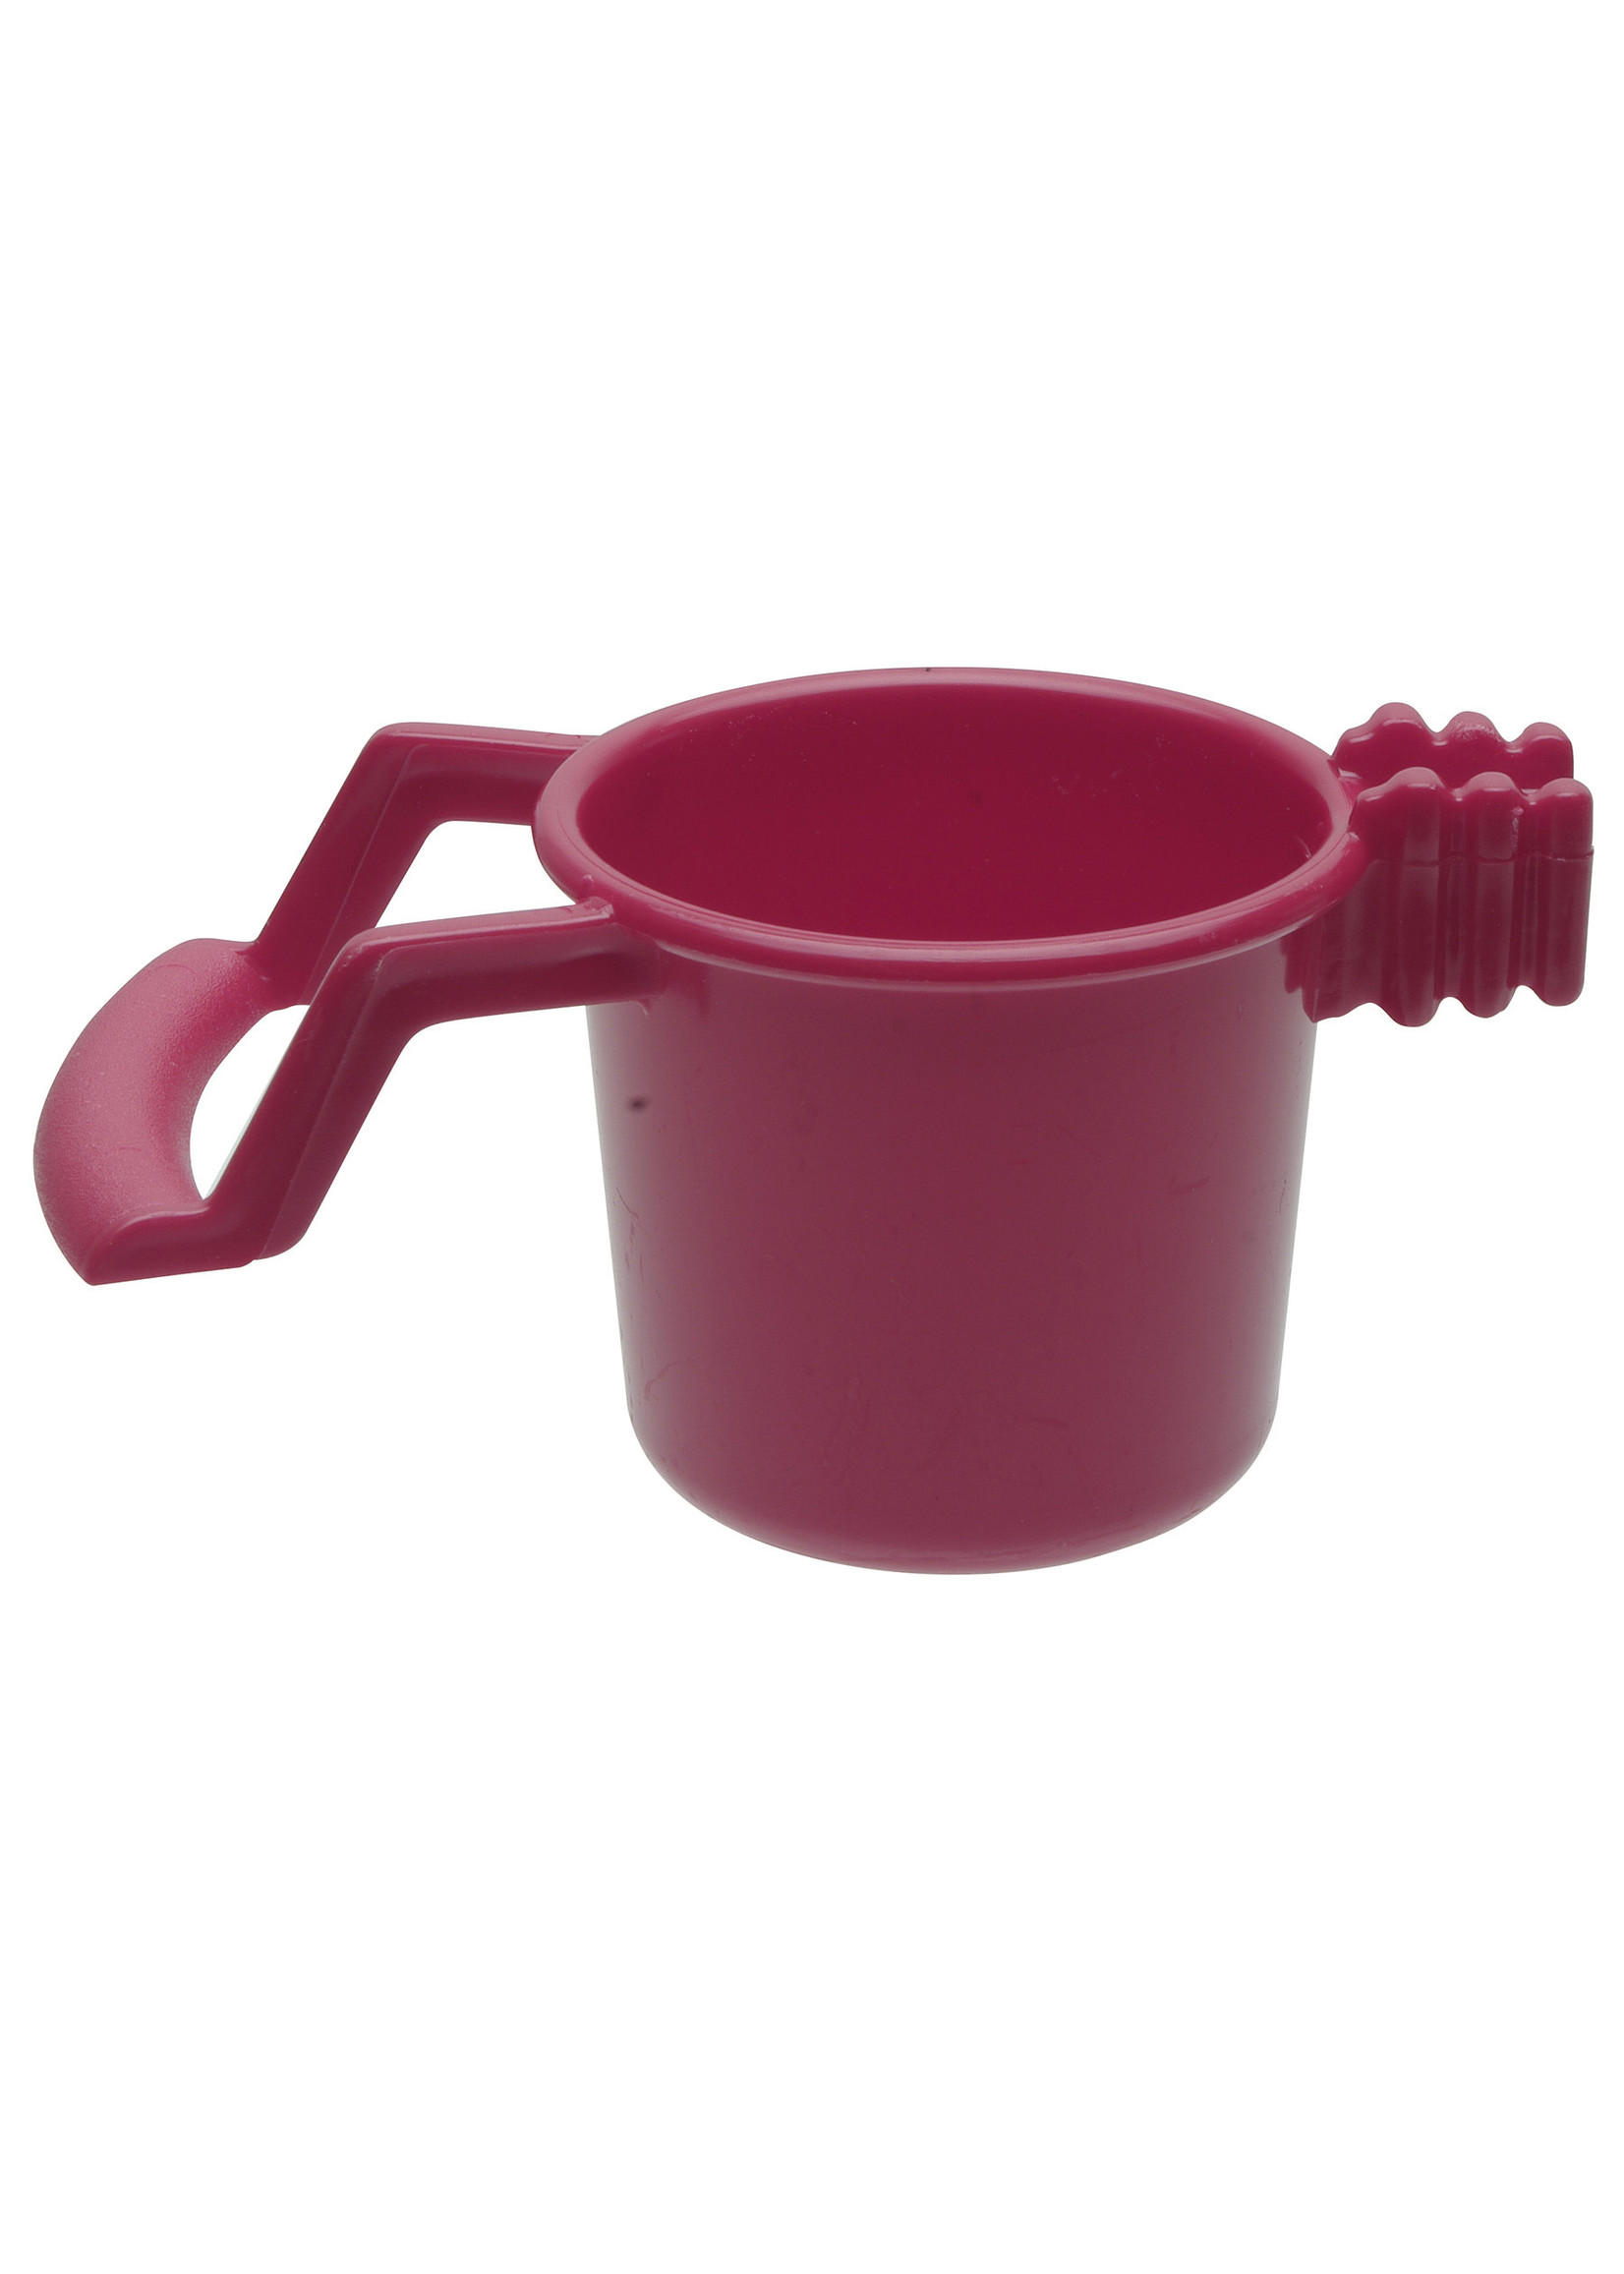 Living World Hagen Living World Biscuit Cup, Red